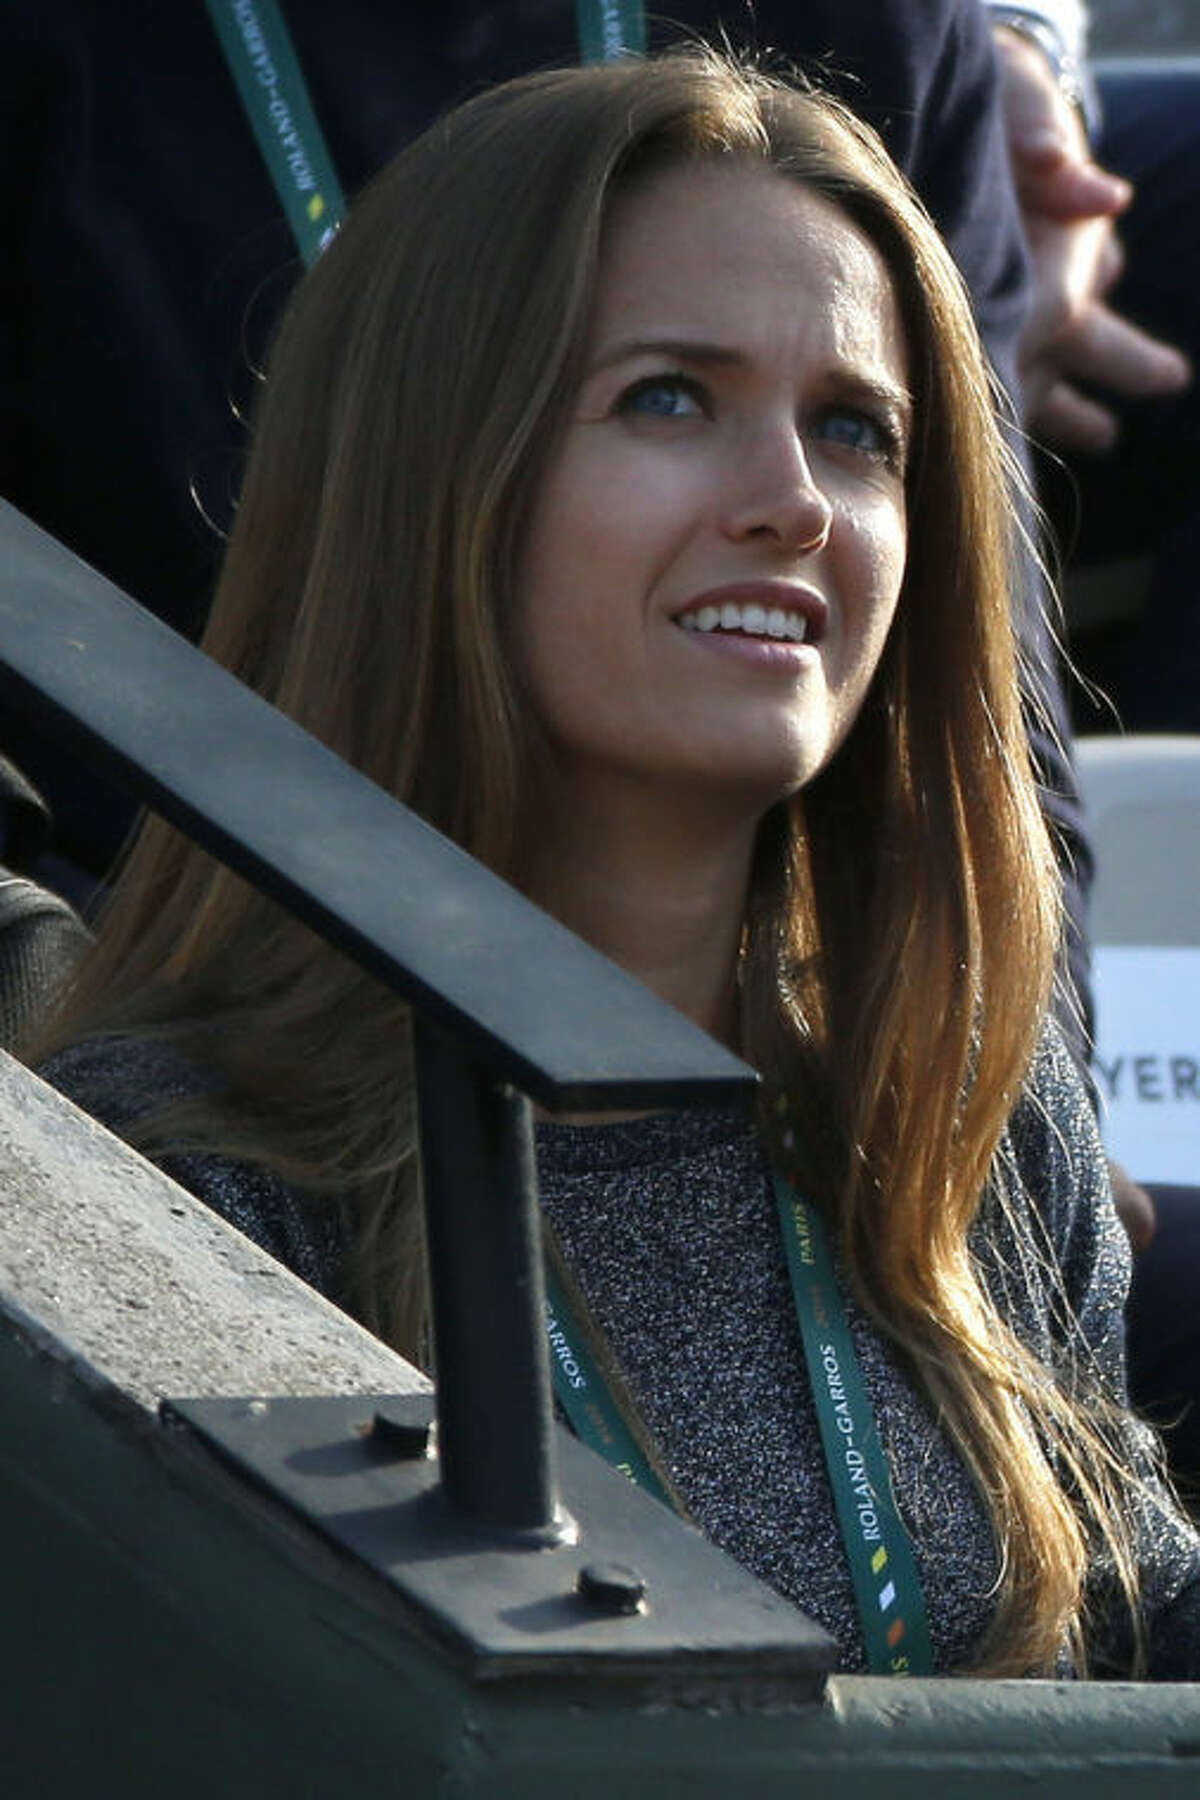 Kim Sears, long-time girlfriend of Britain's Andy Murray, watches Murray during the fourth round match of the French Open tennis tournament against Spain's Fernando Verdasco at the Roland Garros stadium, in Paris, France, Monday, June 2, 2014. (AP Photo/Michel Euler)